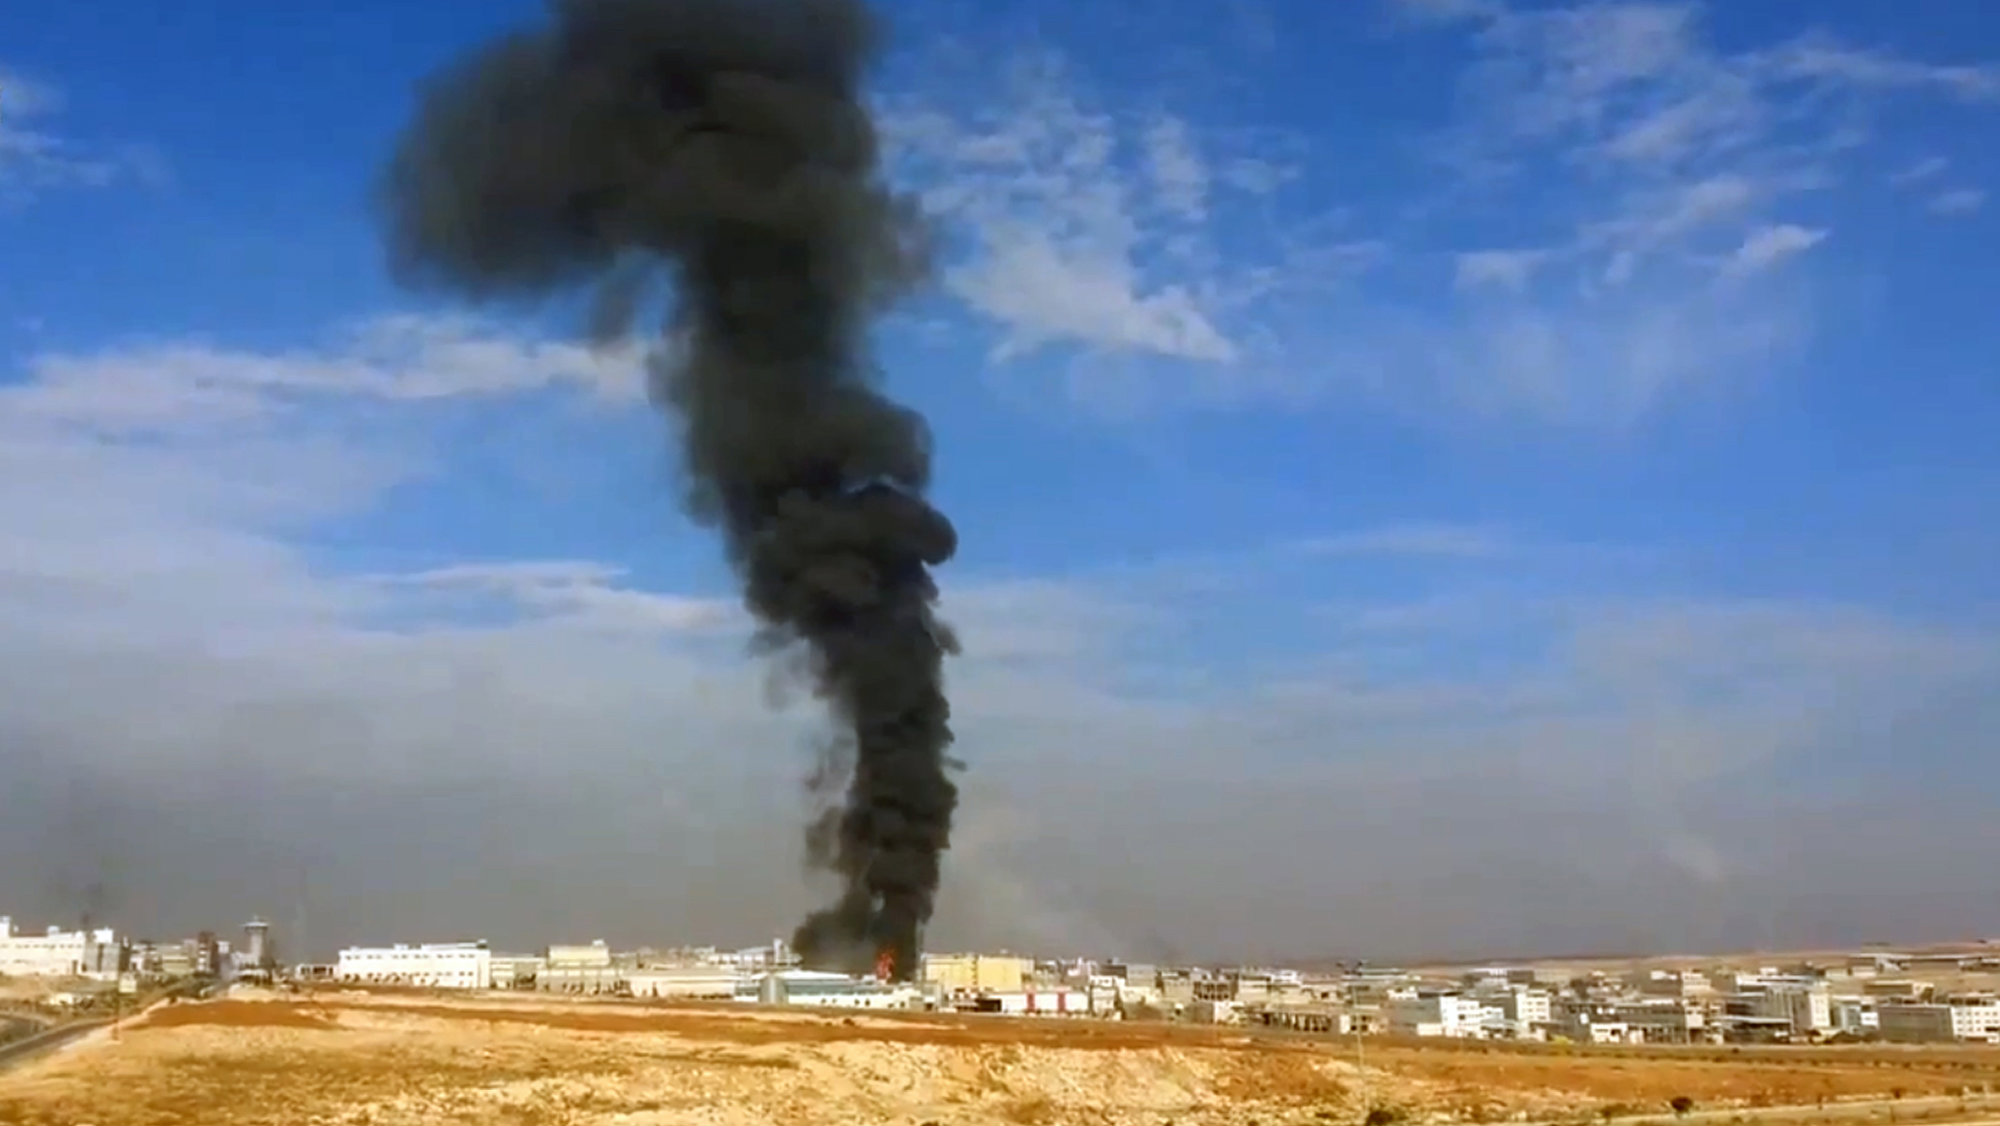 In this image taken from a Saturday, Nov. 23, 2013, video obtained from the Sham News Network and is consistent with independent AP reporting, smoke billows from the Aleppo Industrial City as a result of heavy shelling near Aleppo, Syria. A string of government airstrikes on rebel-held areas in northern Syria killed scores of people Saturday, activists said, as al-Qaida-linked rebels captured one of the country's major oil fields in the east.